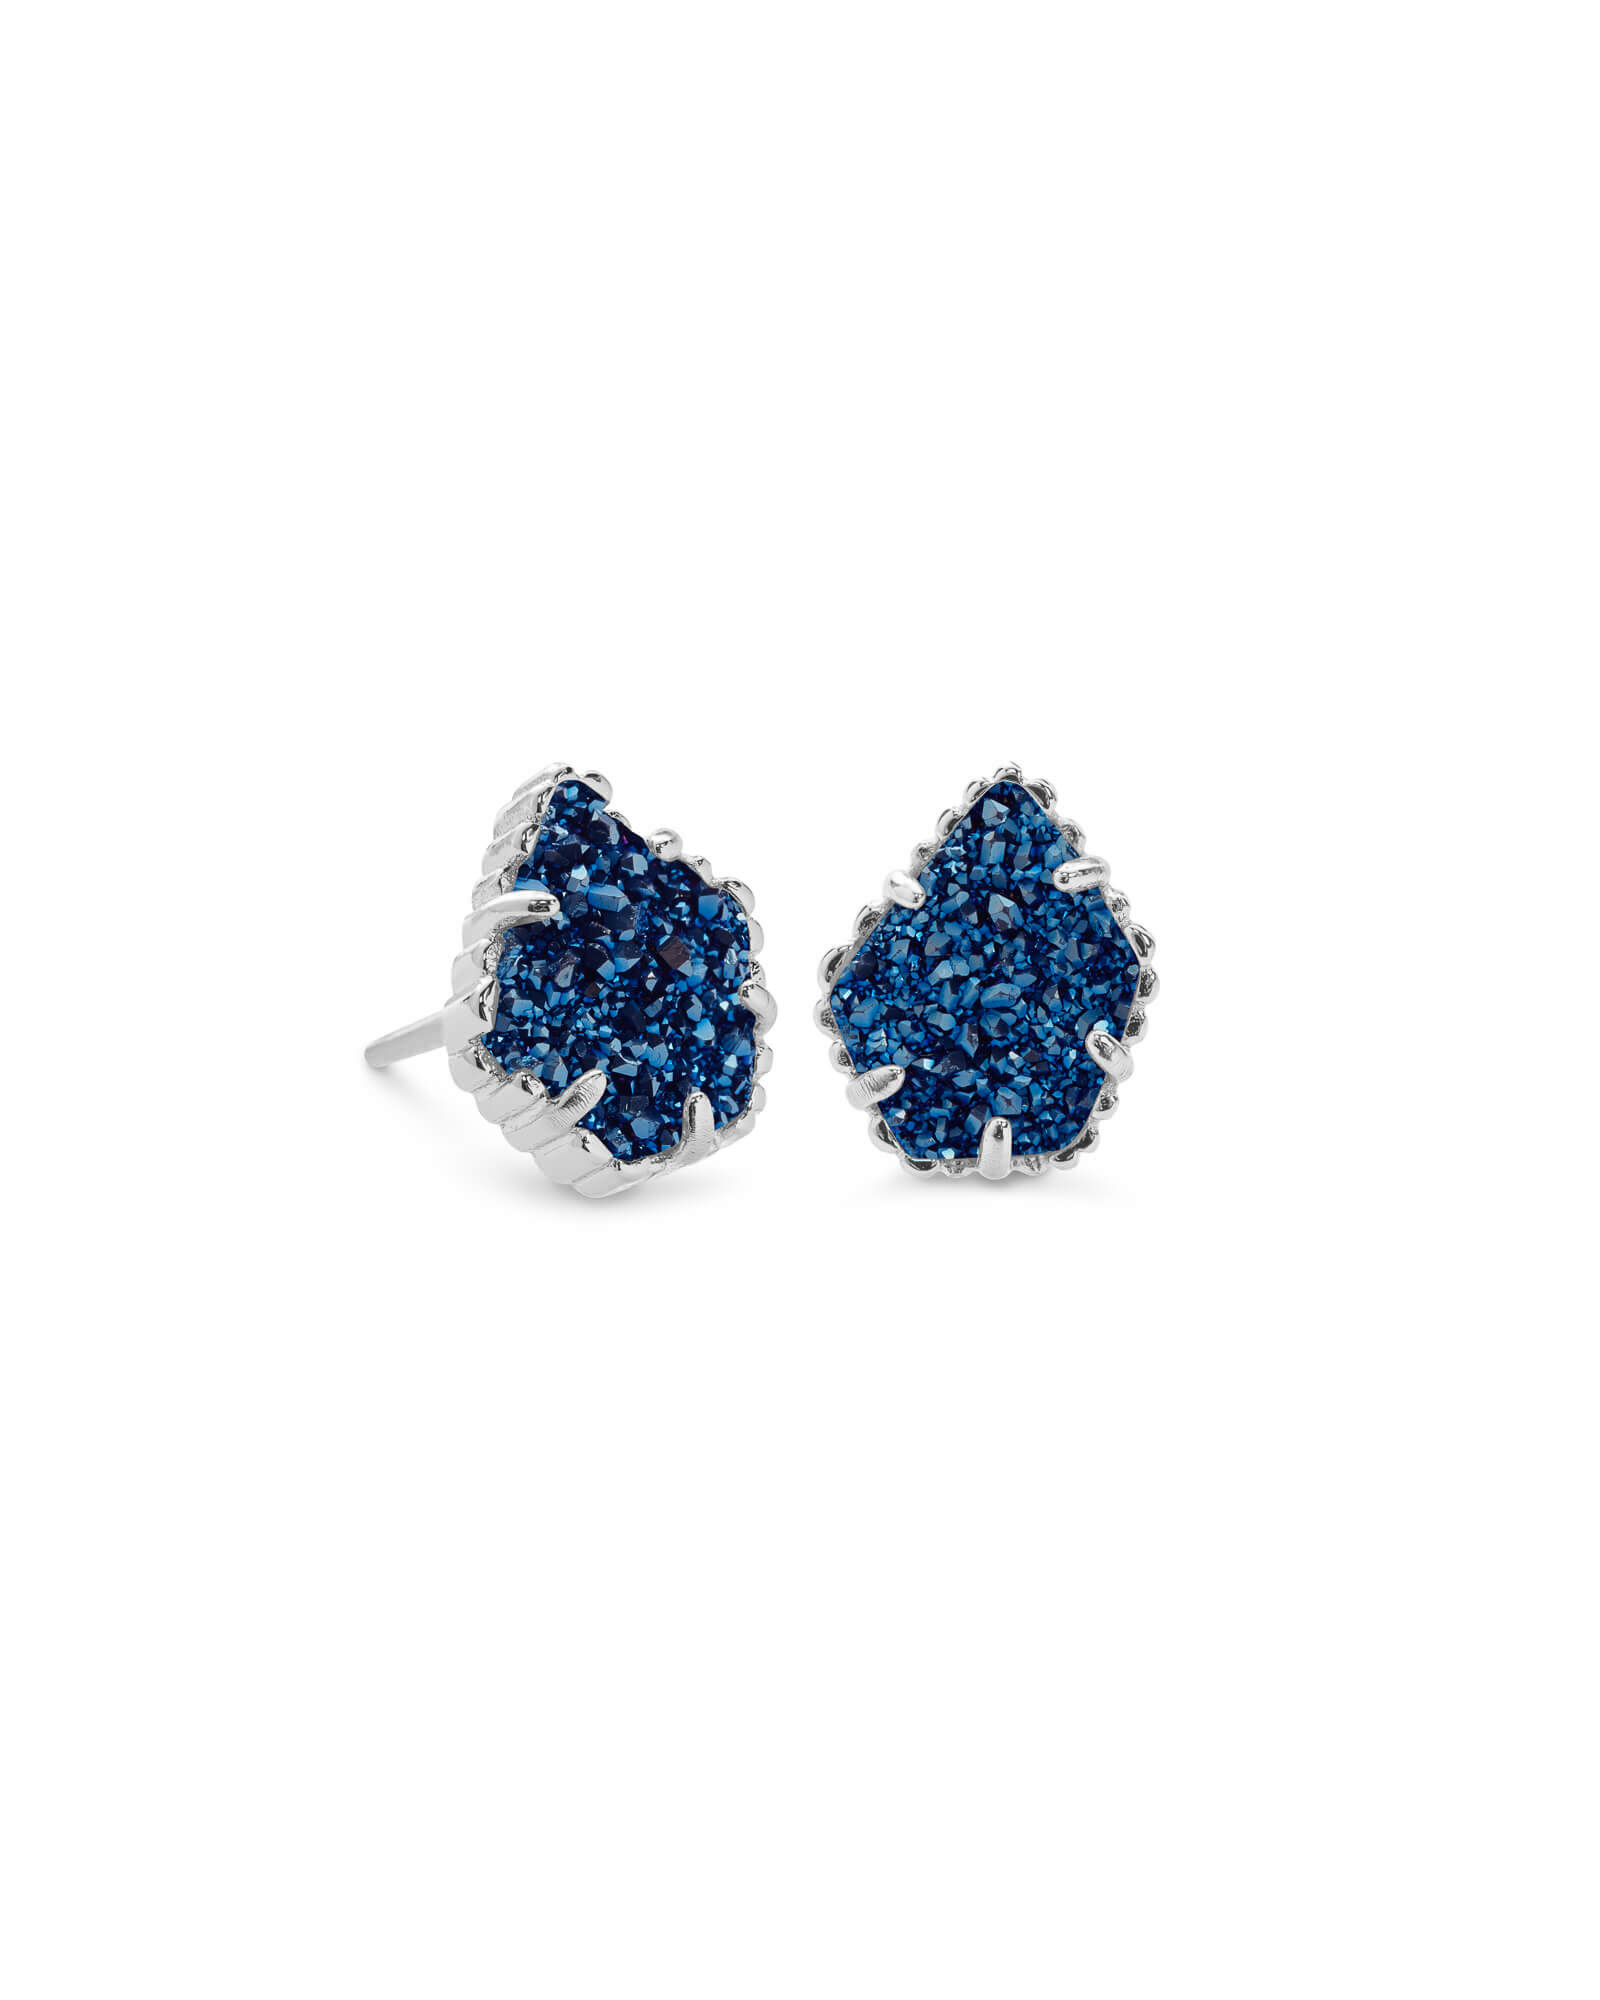 e09ffbfc0 Tessa Silver Stud Earrings in Blue Drusy | Kendra Scott